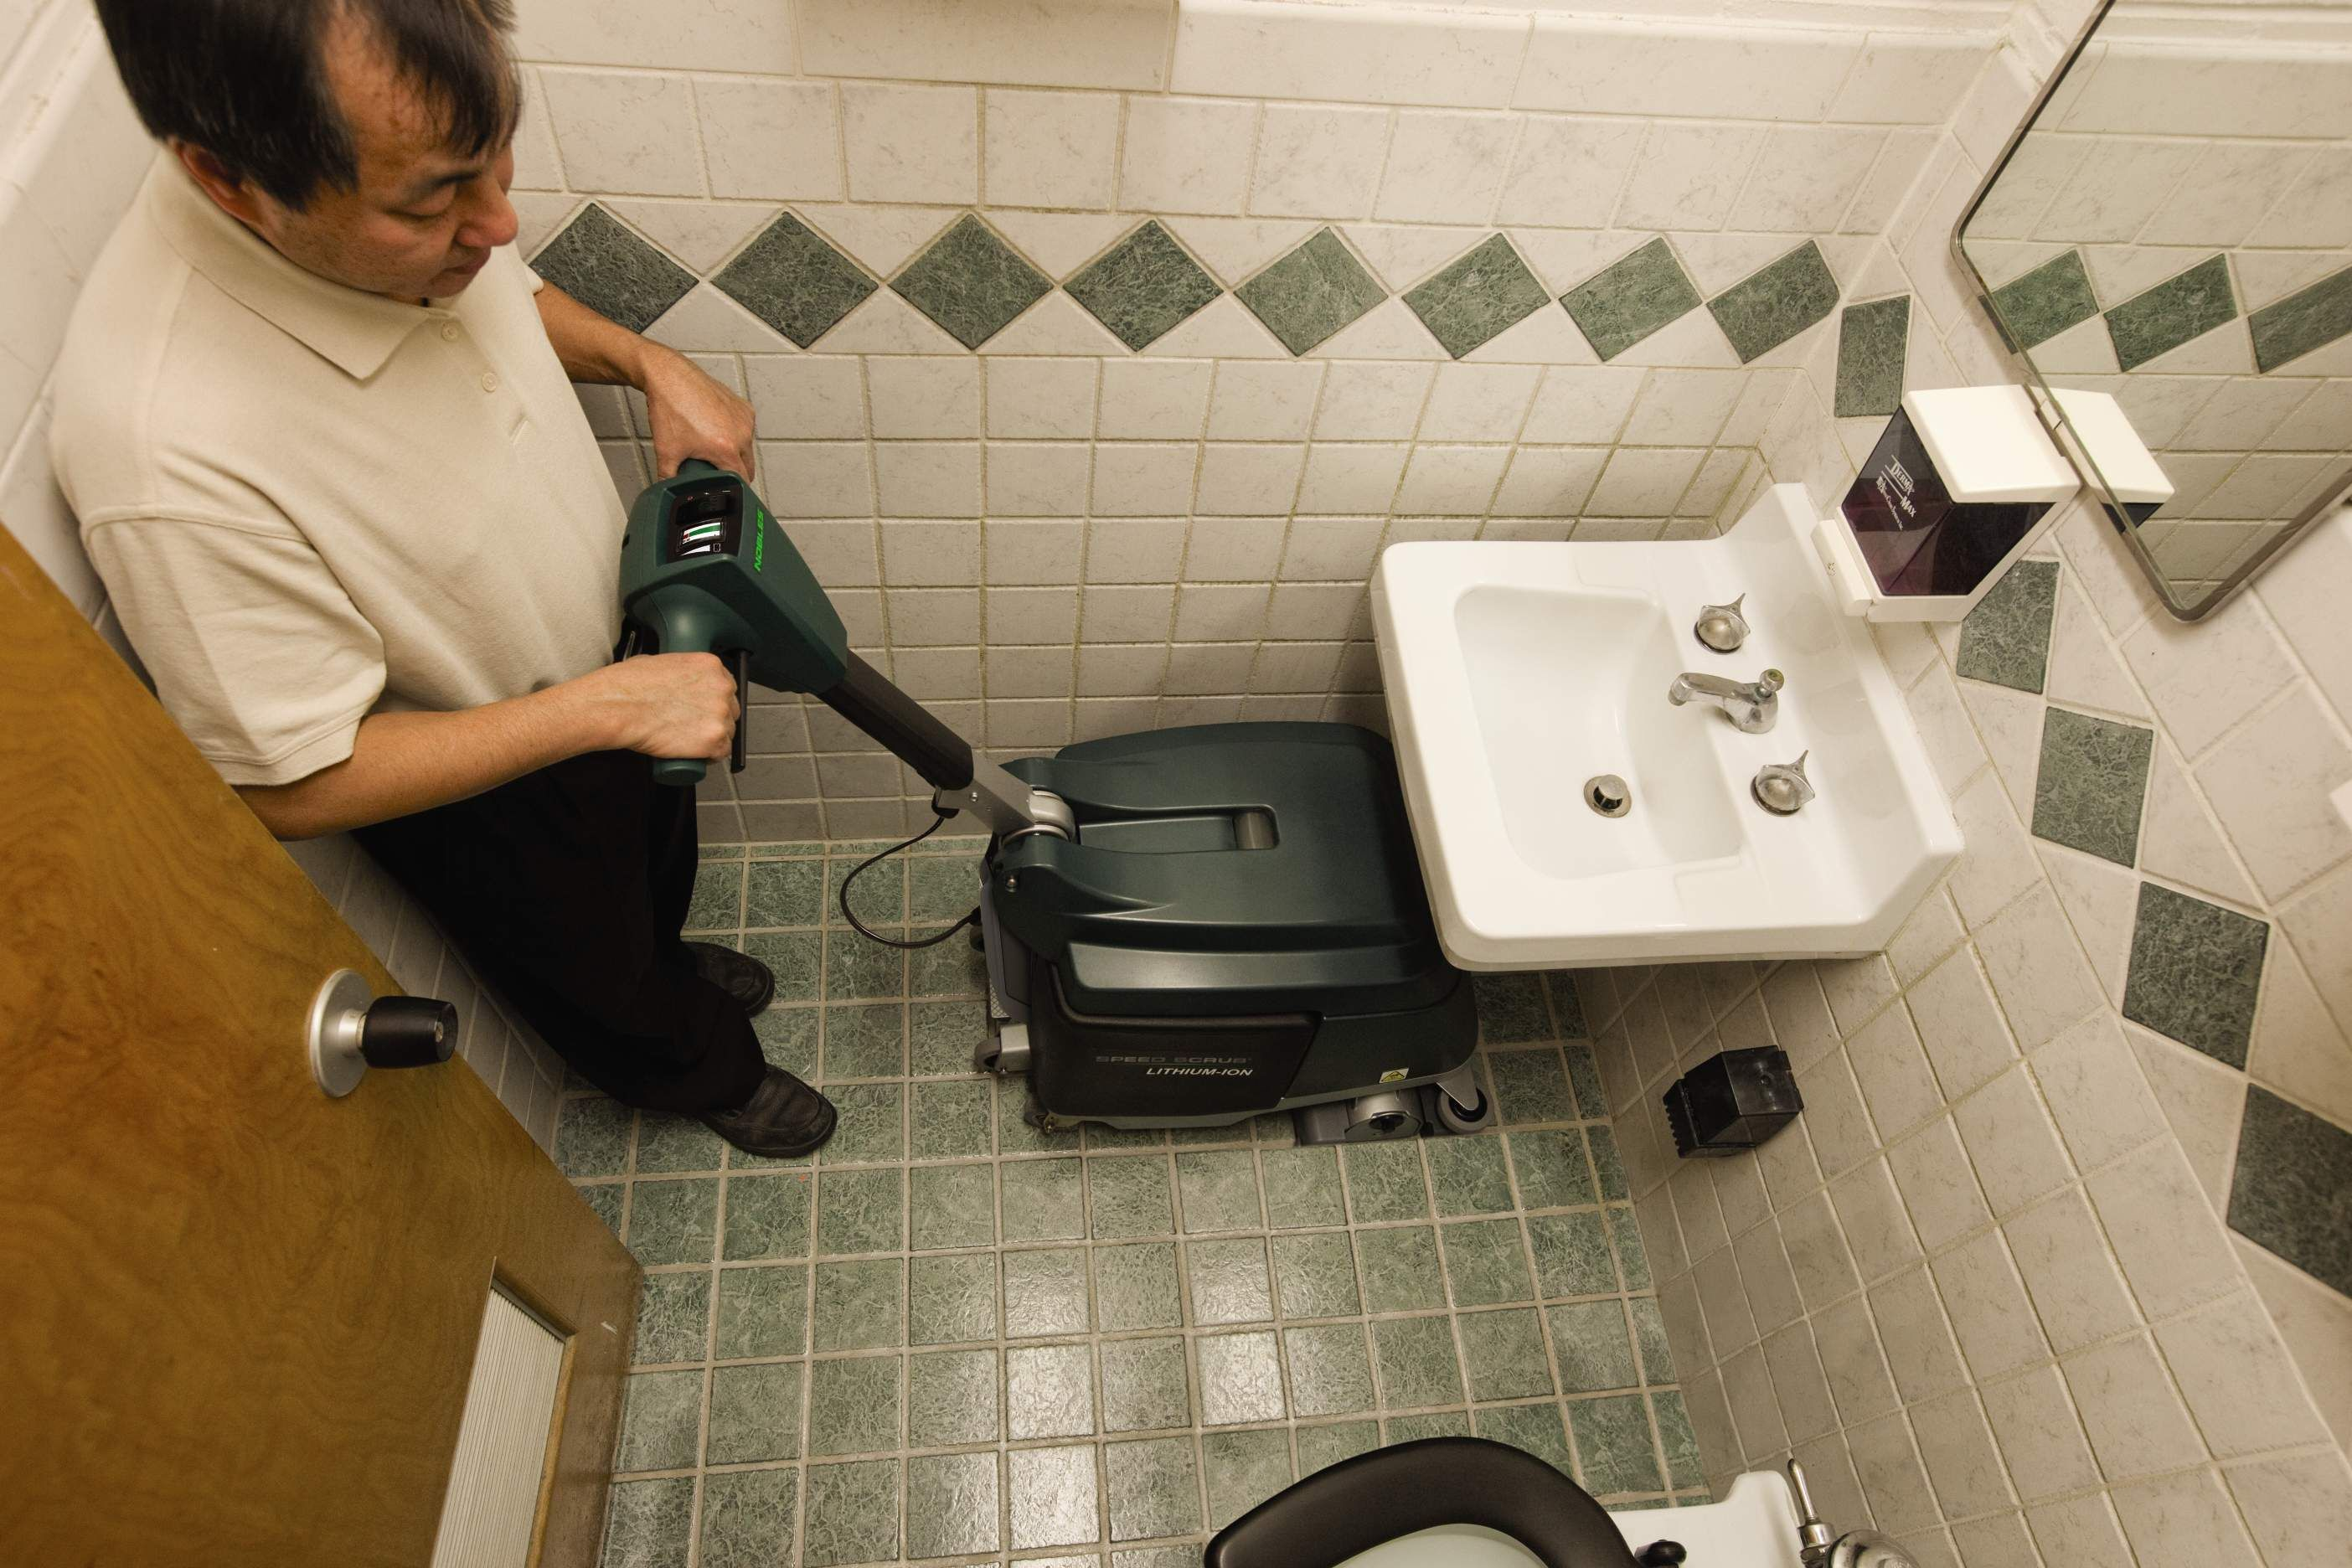 Tile floor polisher machine battery google search library tile floor polisher machine battery google search dailygadgetfo Image collections